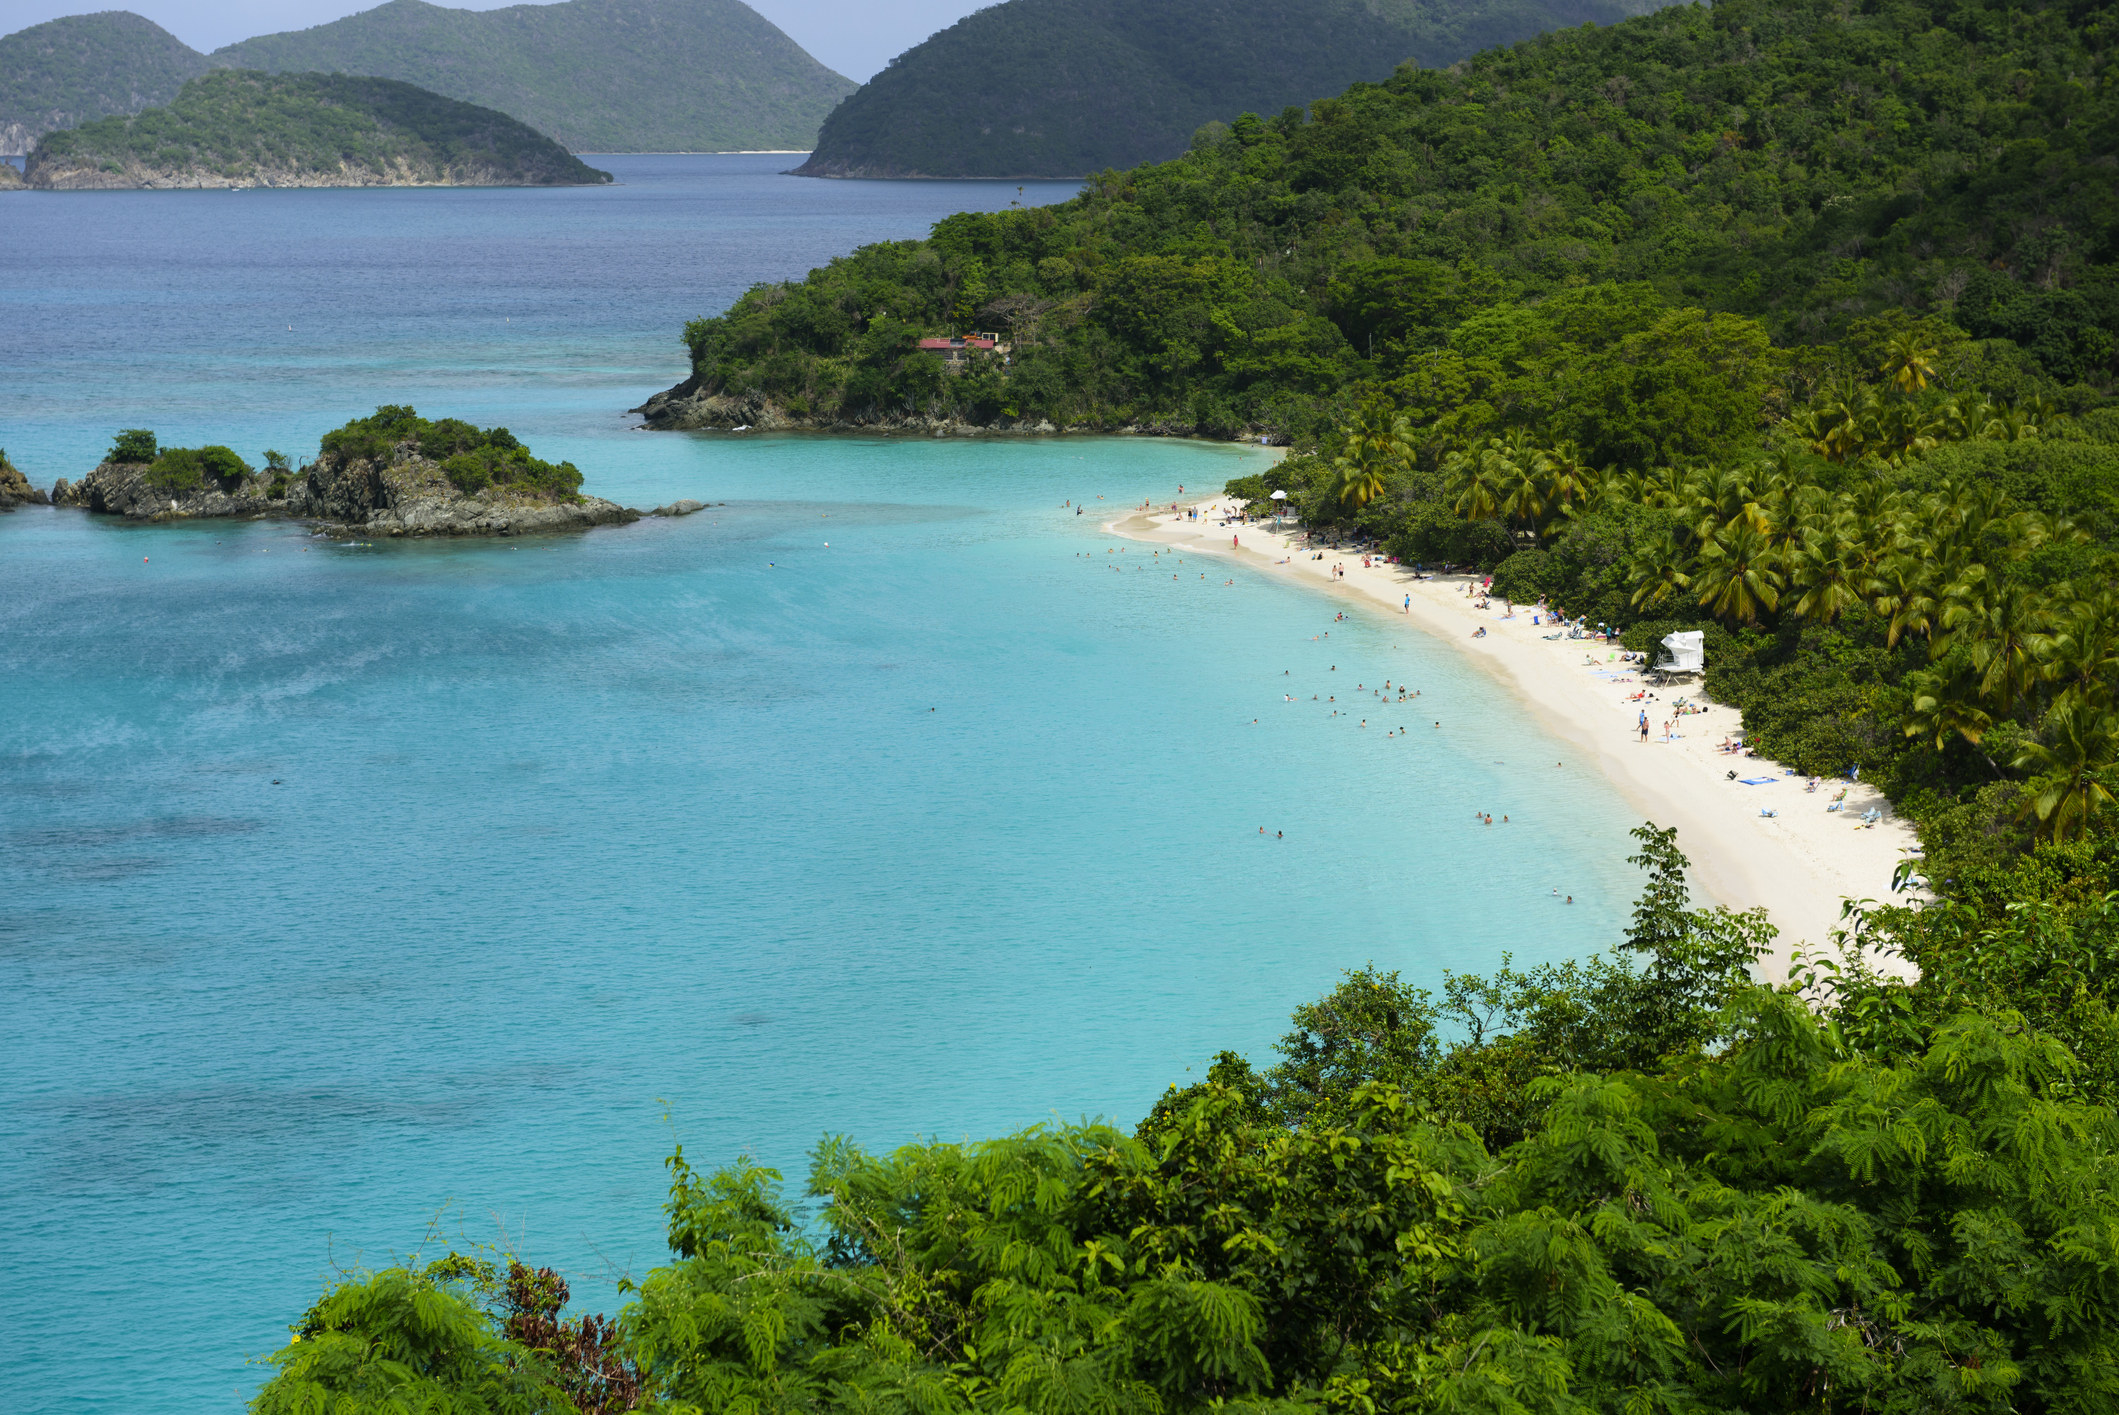 A blue crescent-shaped beach surrounded by lush palm trees in Virgin Islands National Park.